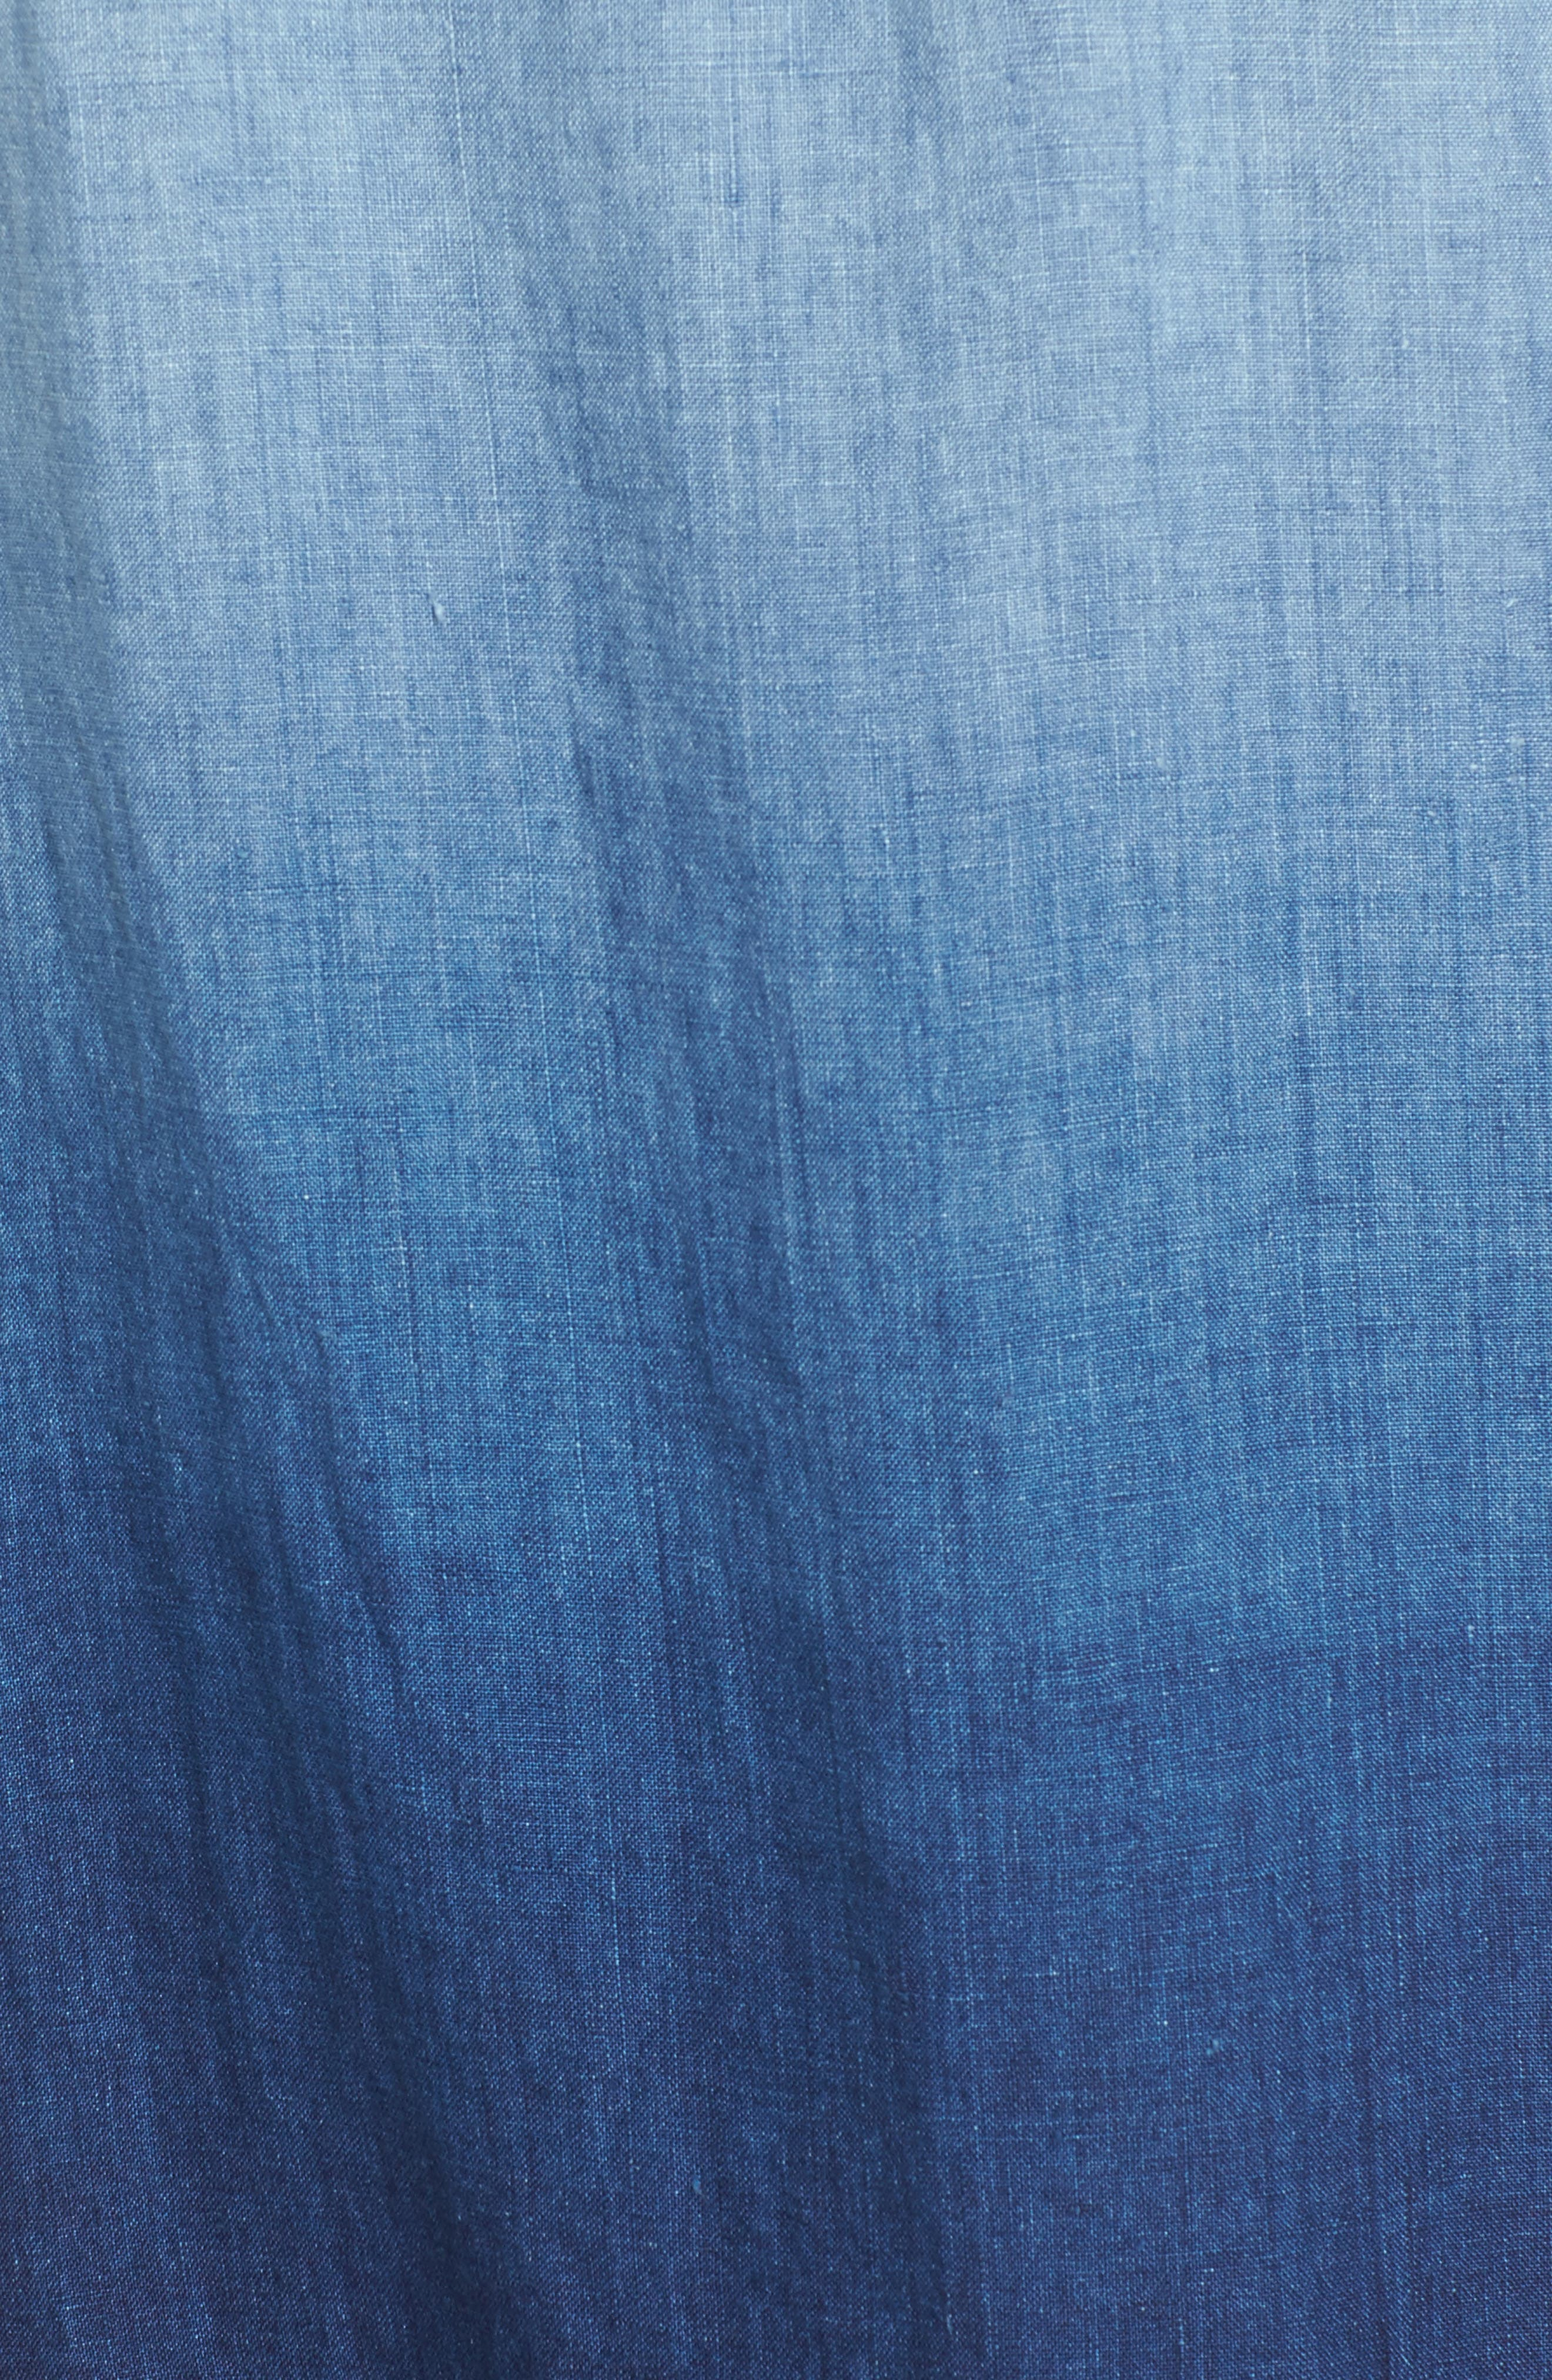 Indigo Dip Dyed Shift Dress,                             Alternate thumbnail 5, color,